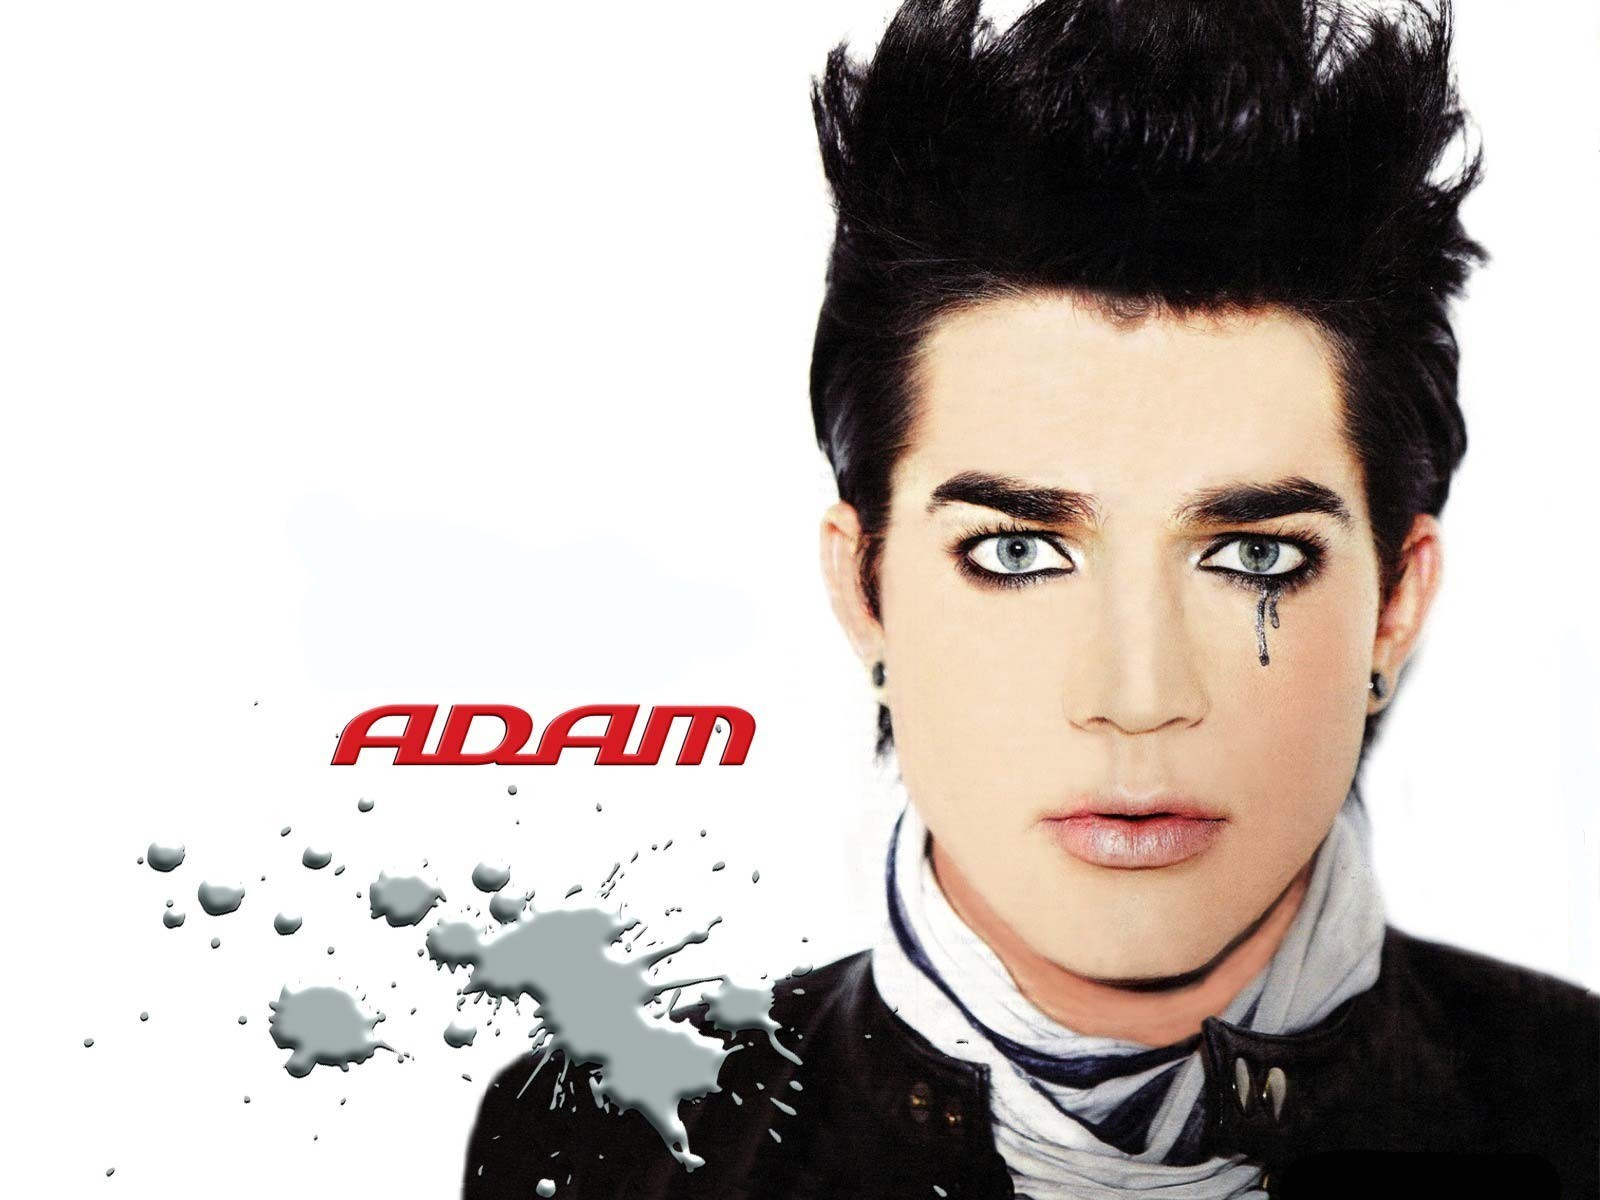 lambert wallpaper adam - photo #10